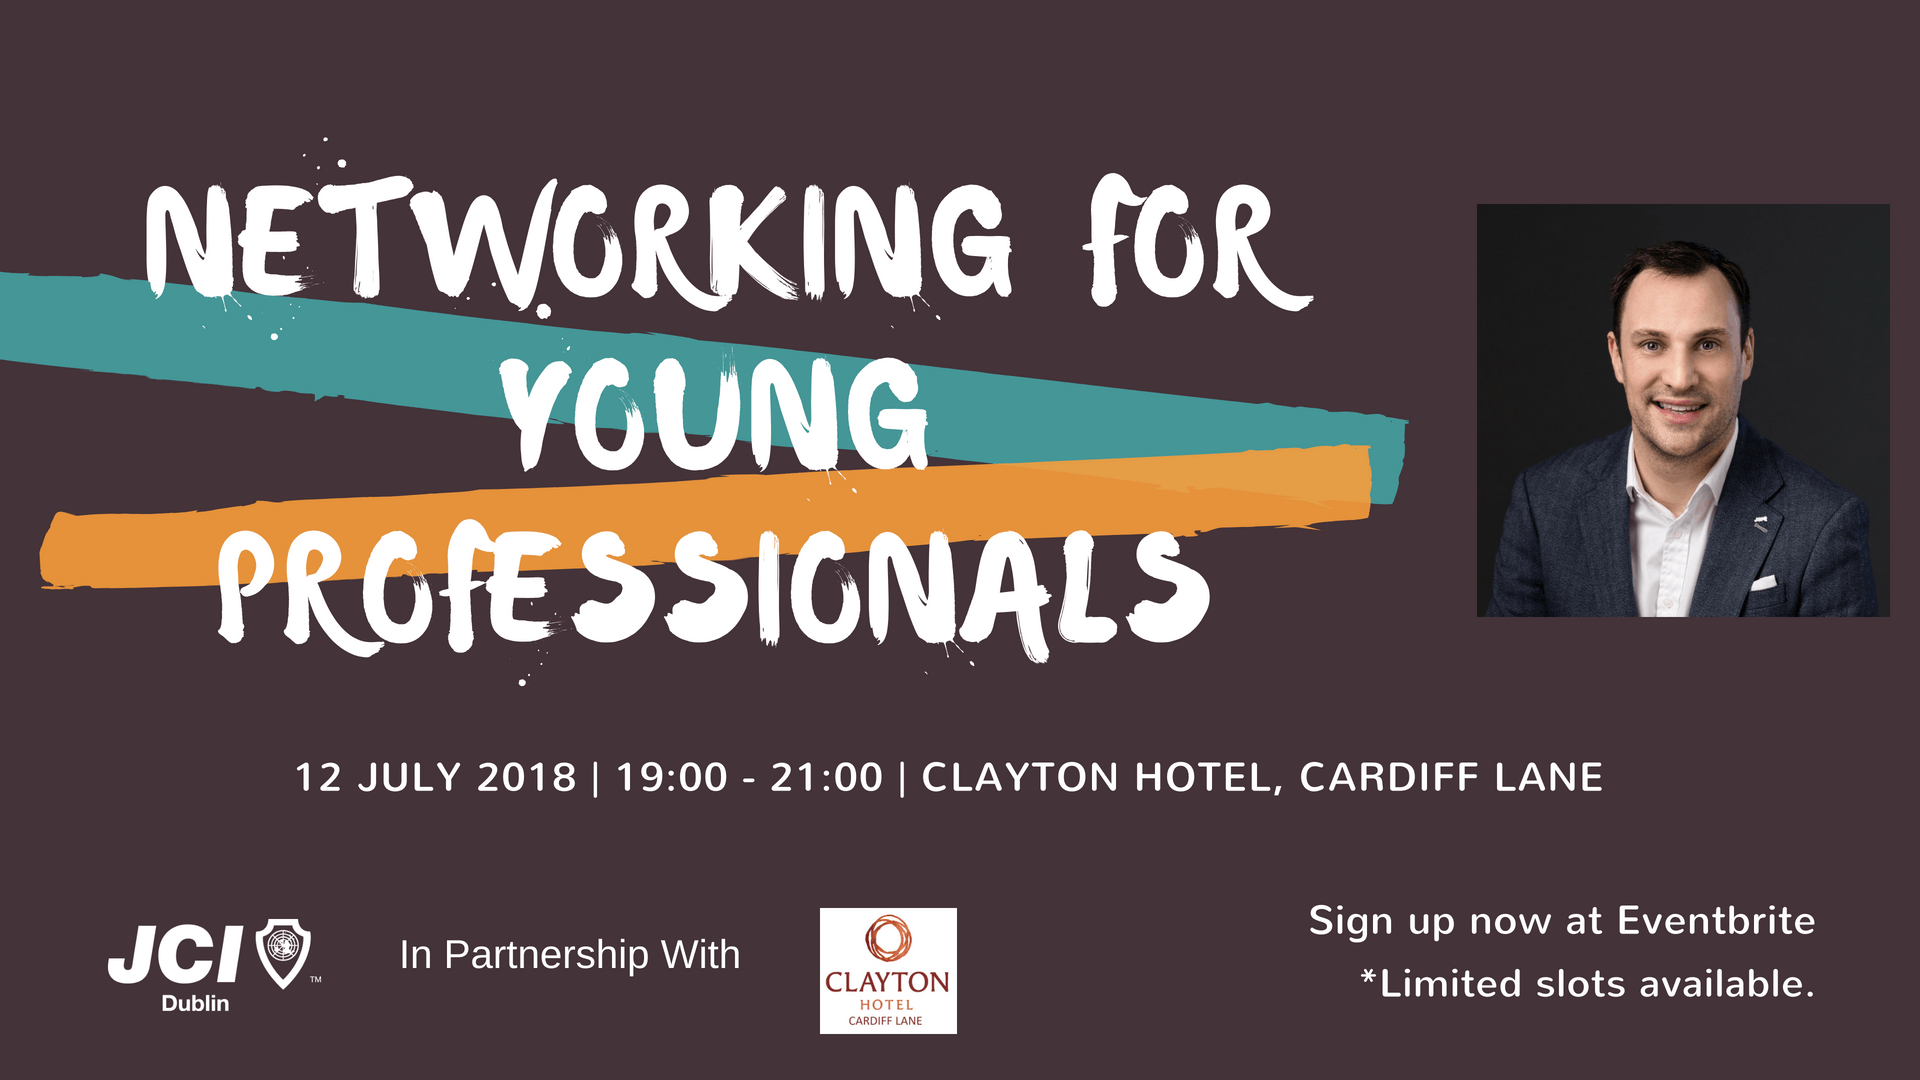 Networking for Young Professionals